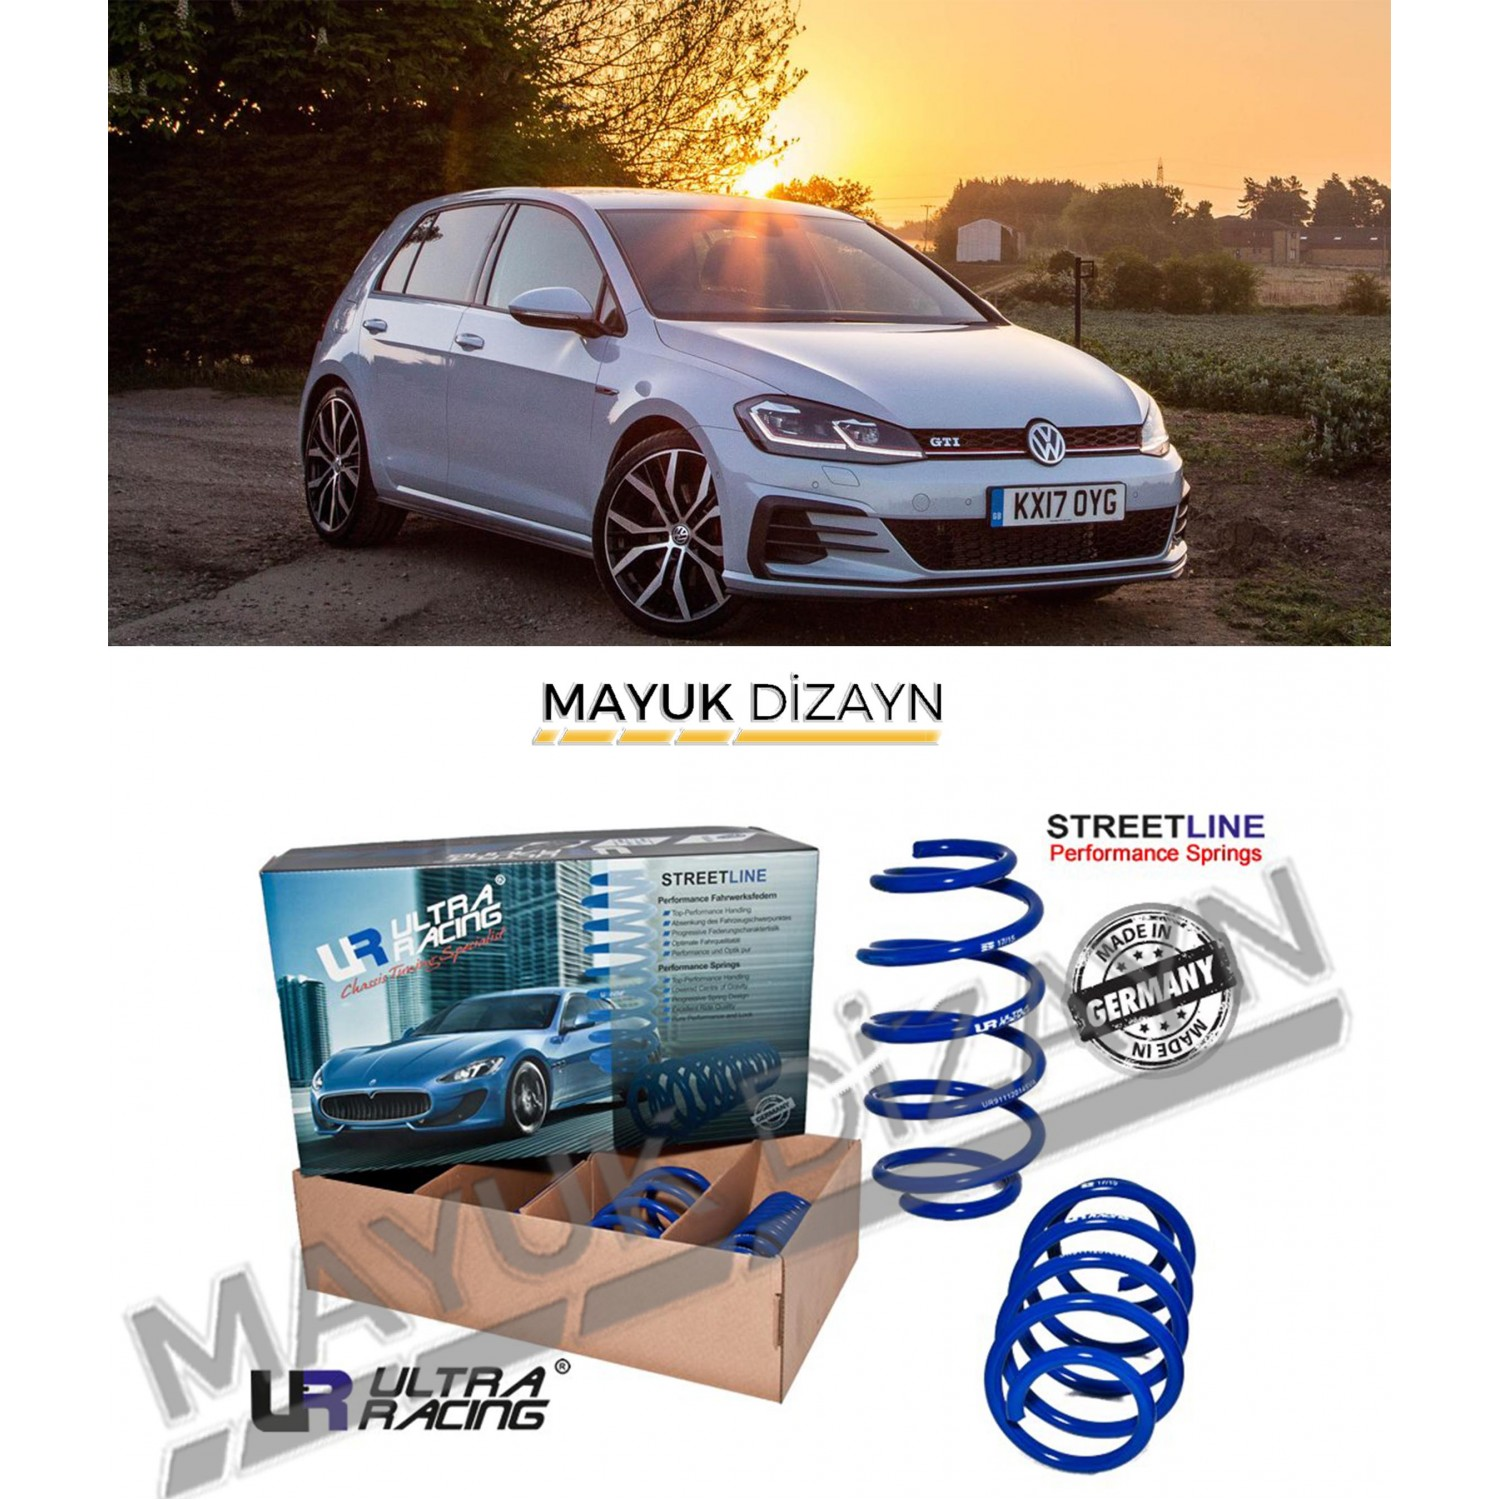 VW GOLF MK7/7.5 ULTRA RACING SPOR YAY (2012-) -MAYUK Dizayn-